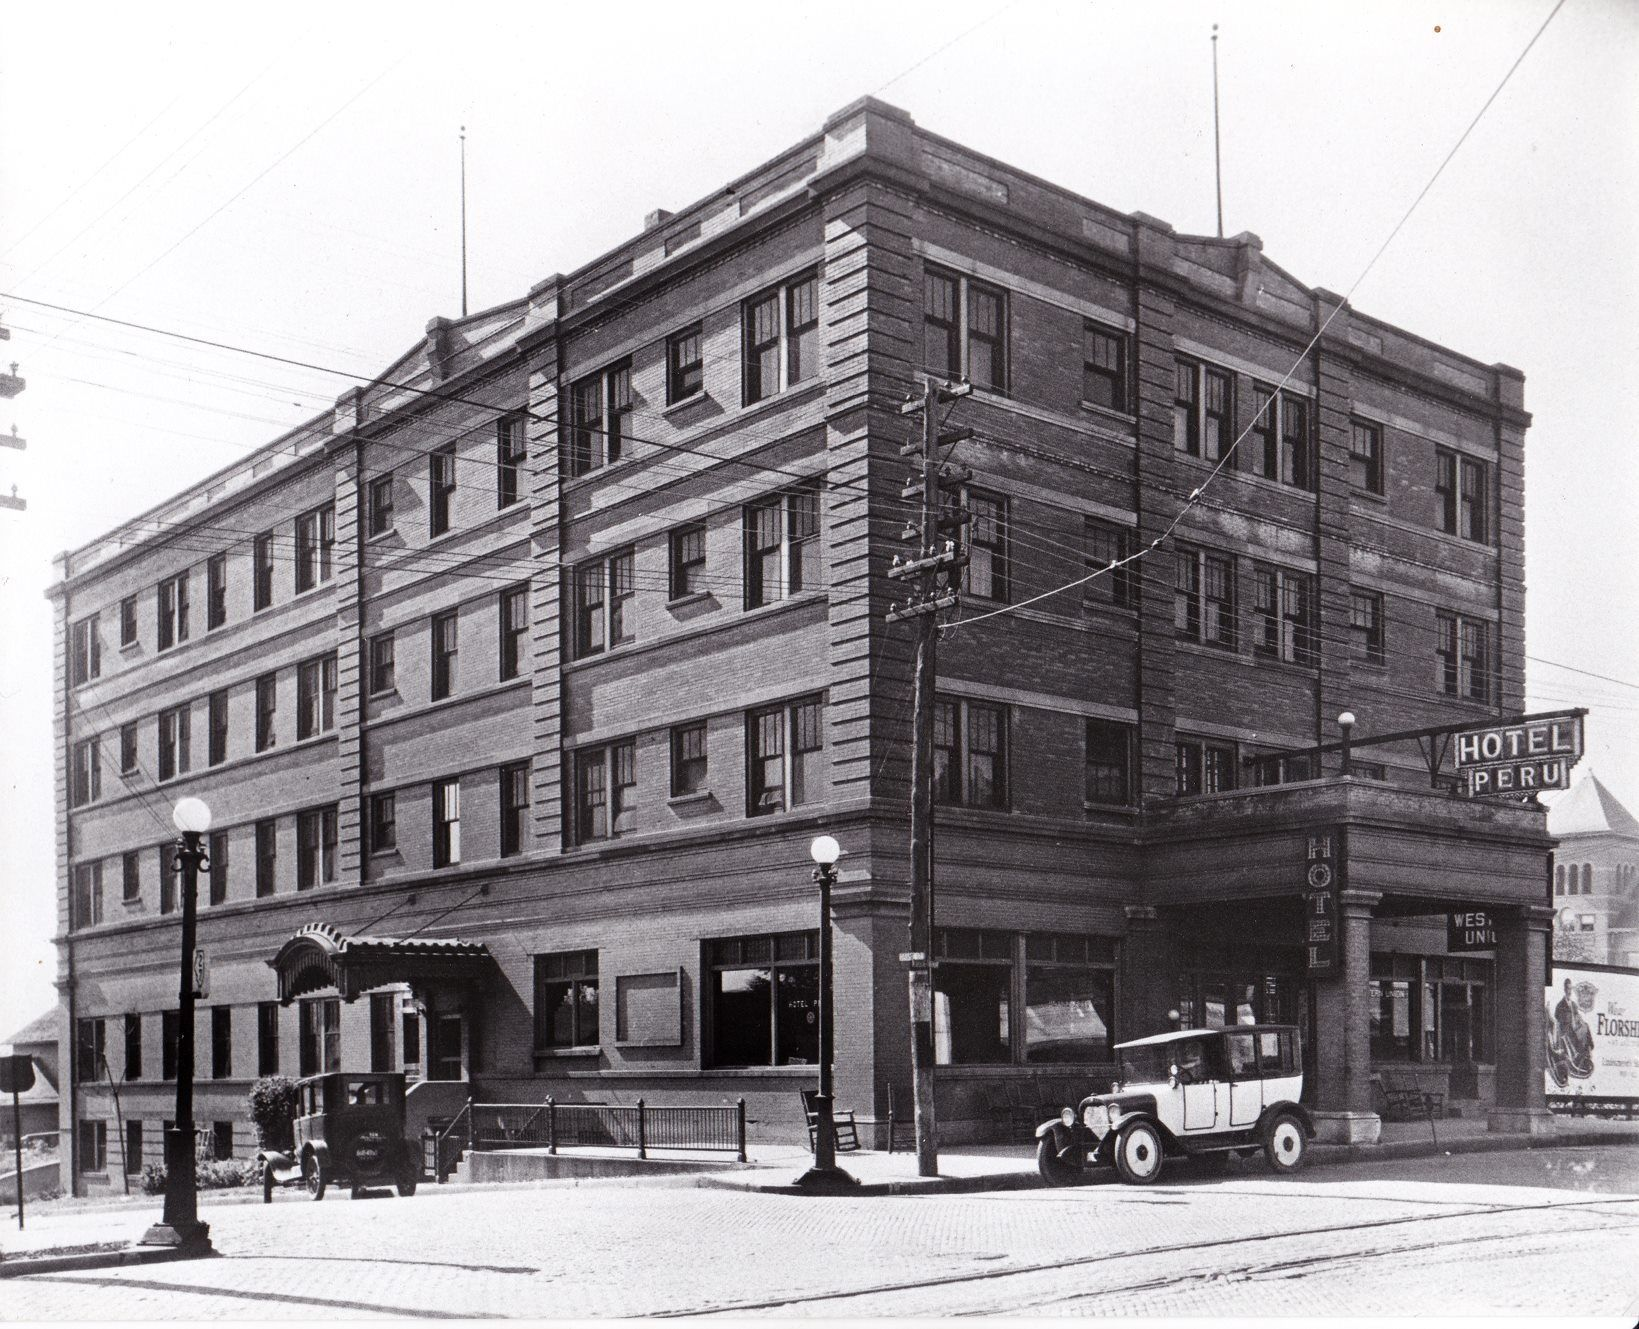 Peru Hotel Was Located 4th Grant Streets In Peru Il Peru Hotels Illinois River Peru Illinois